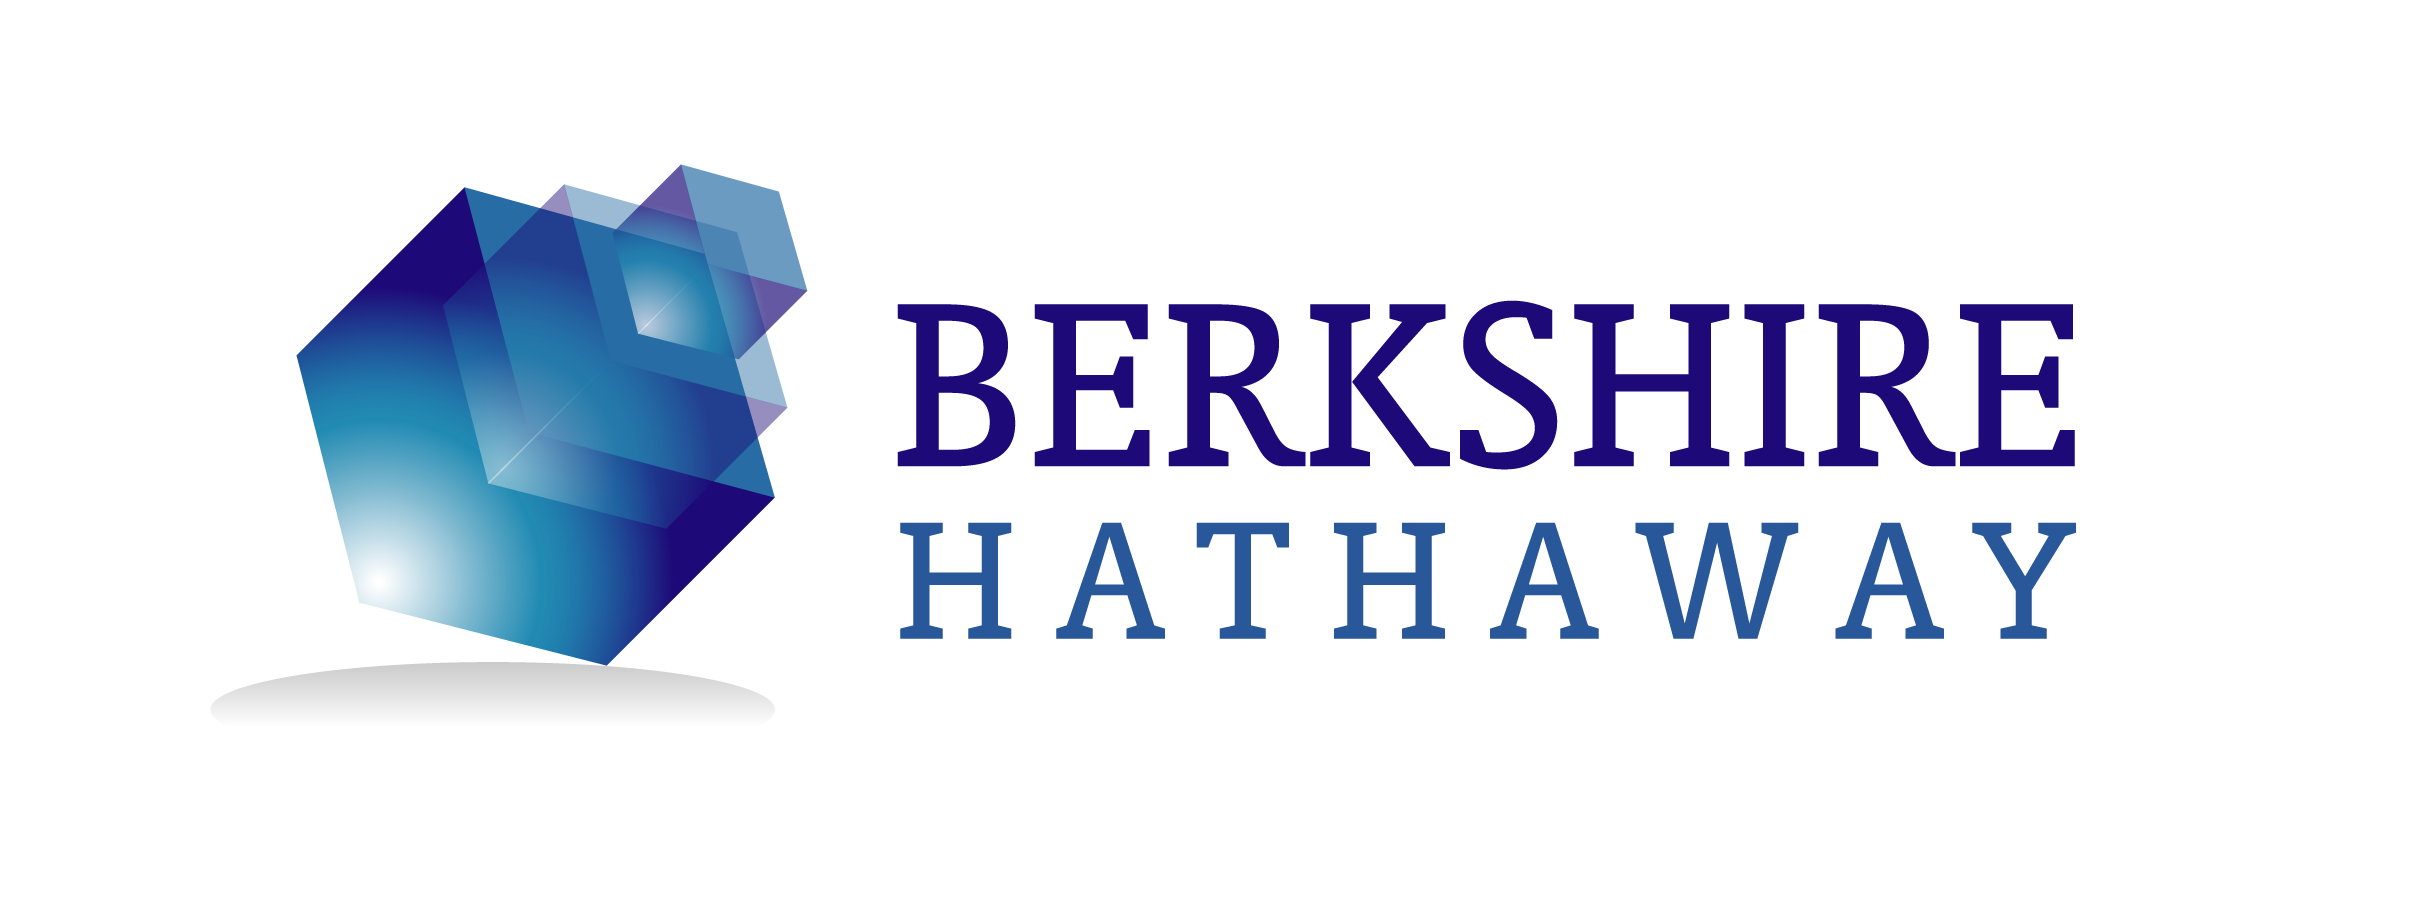 On March 30, , Berkshire Hathaway announced TTI, Inc. to be part of the Berkshire Hathaway Group. Headquartered in Fort Worth, Texas, TTI, Inc. is the largest distributor specialist of passive, interconnect and electromechanical components.